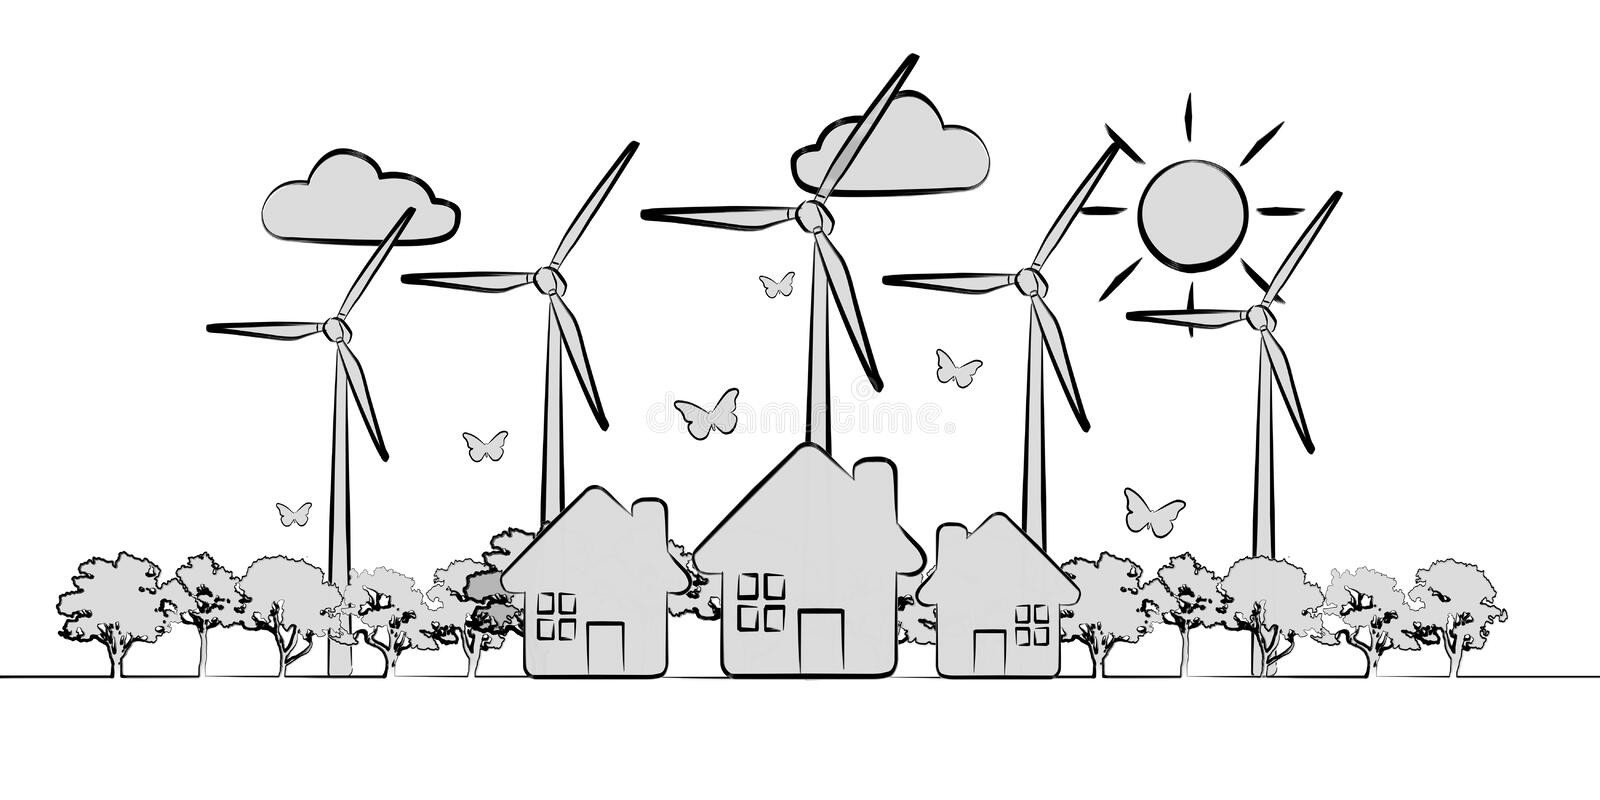 Download Hand-drawn Renewable Energy Sketch Stock Photo - Image of business, emission: 95289384